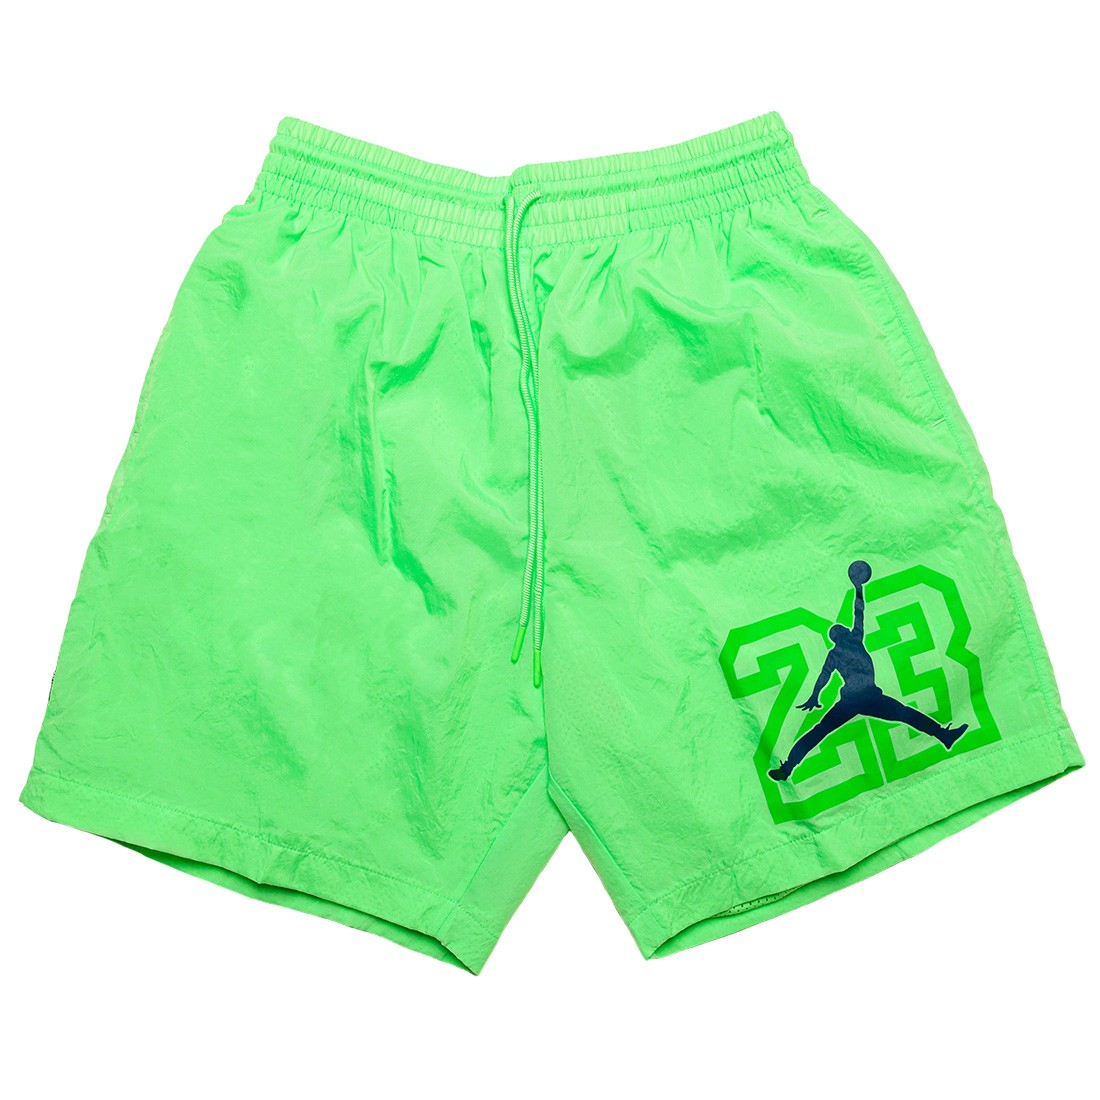 Jordan Men Legacy AJ13 Poolside Shorts (illusion green)